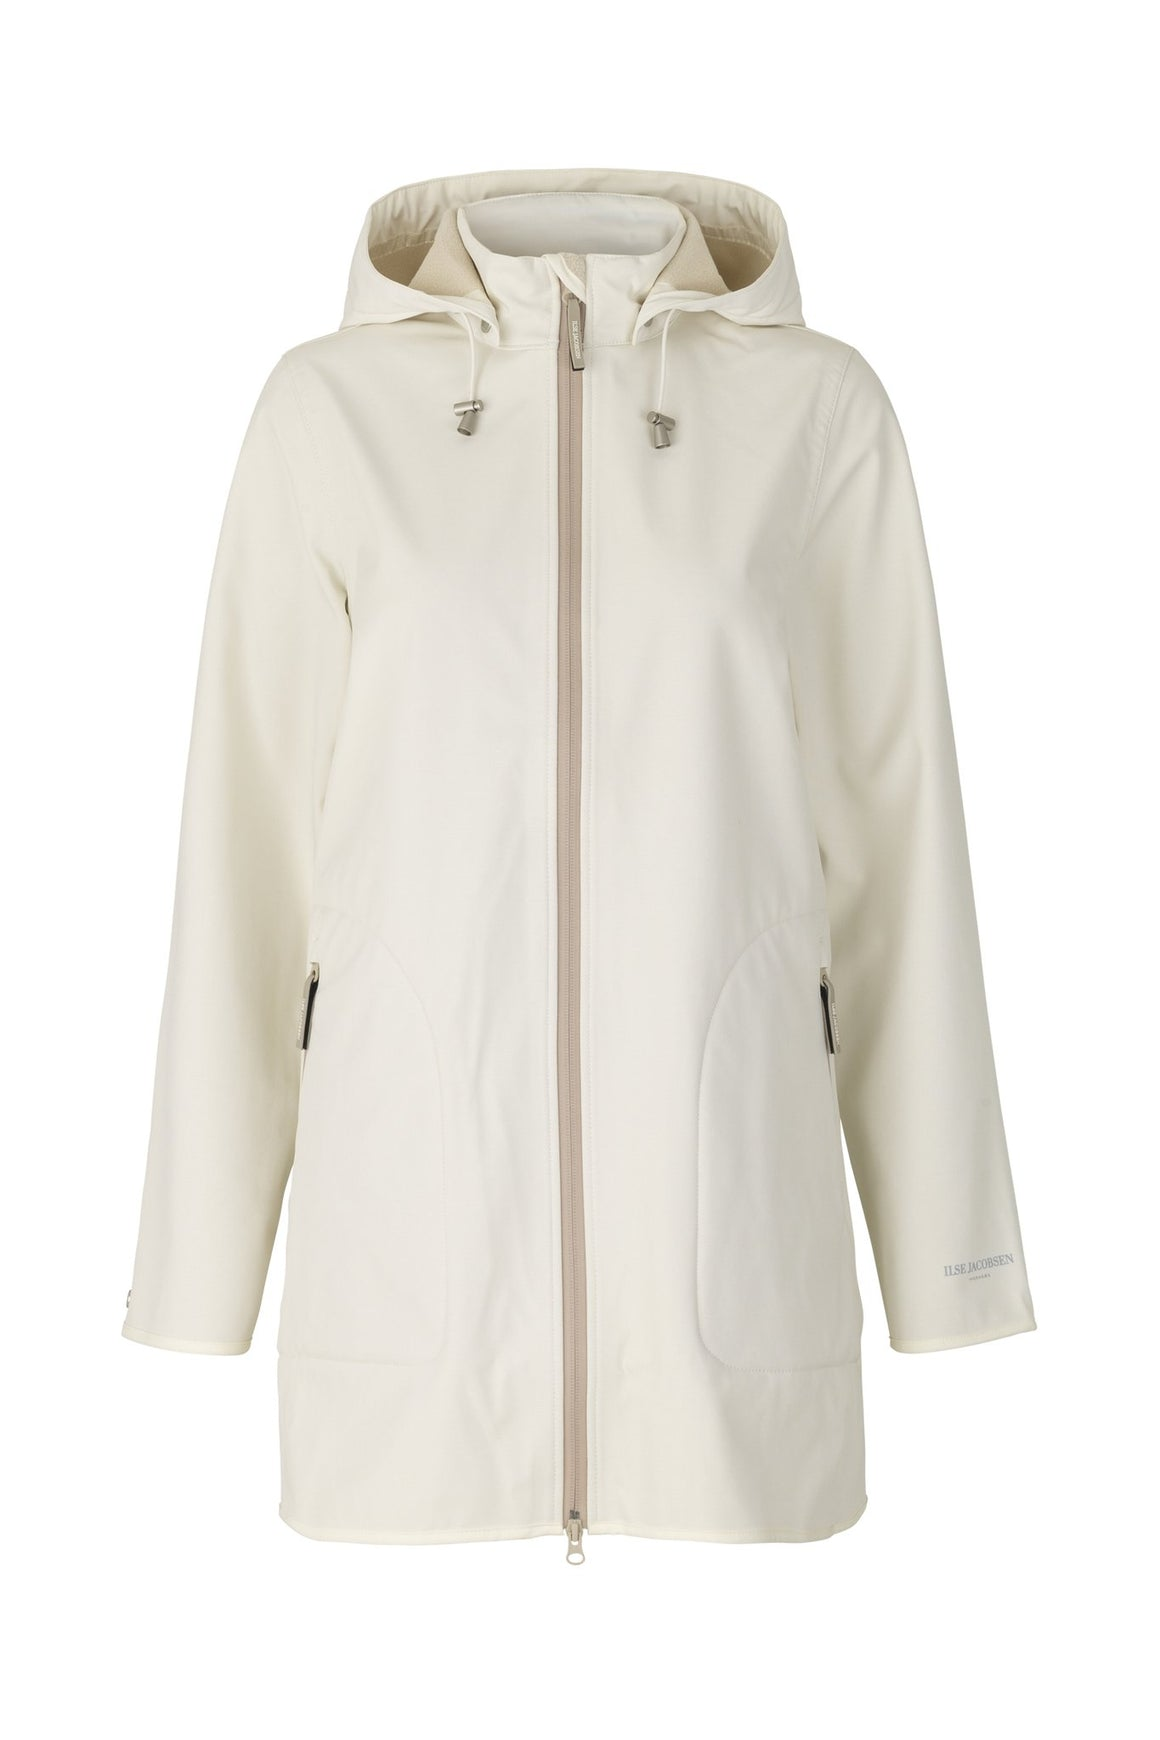 Ilse Jacobsen 135b Raincoat White Sugar